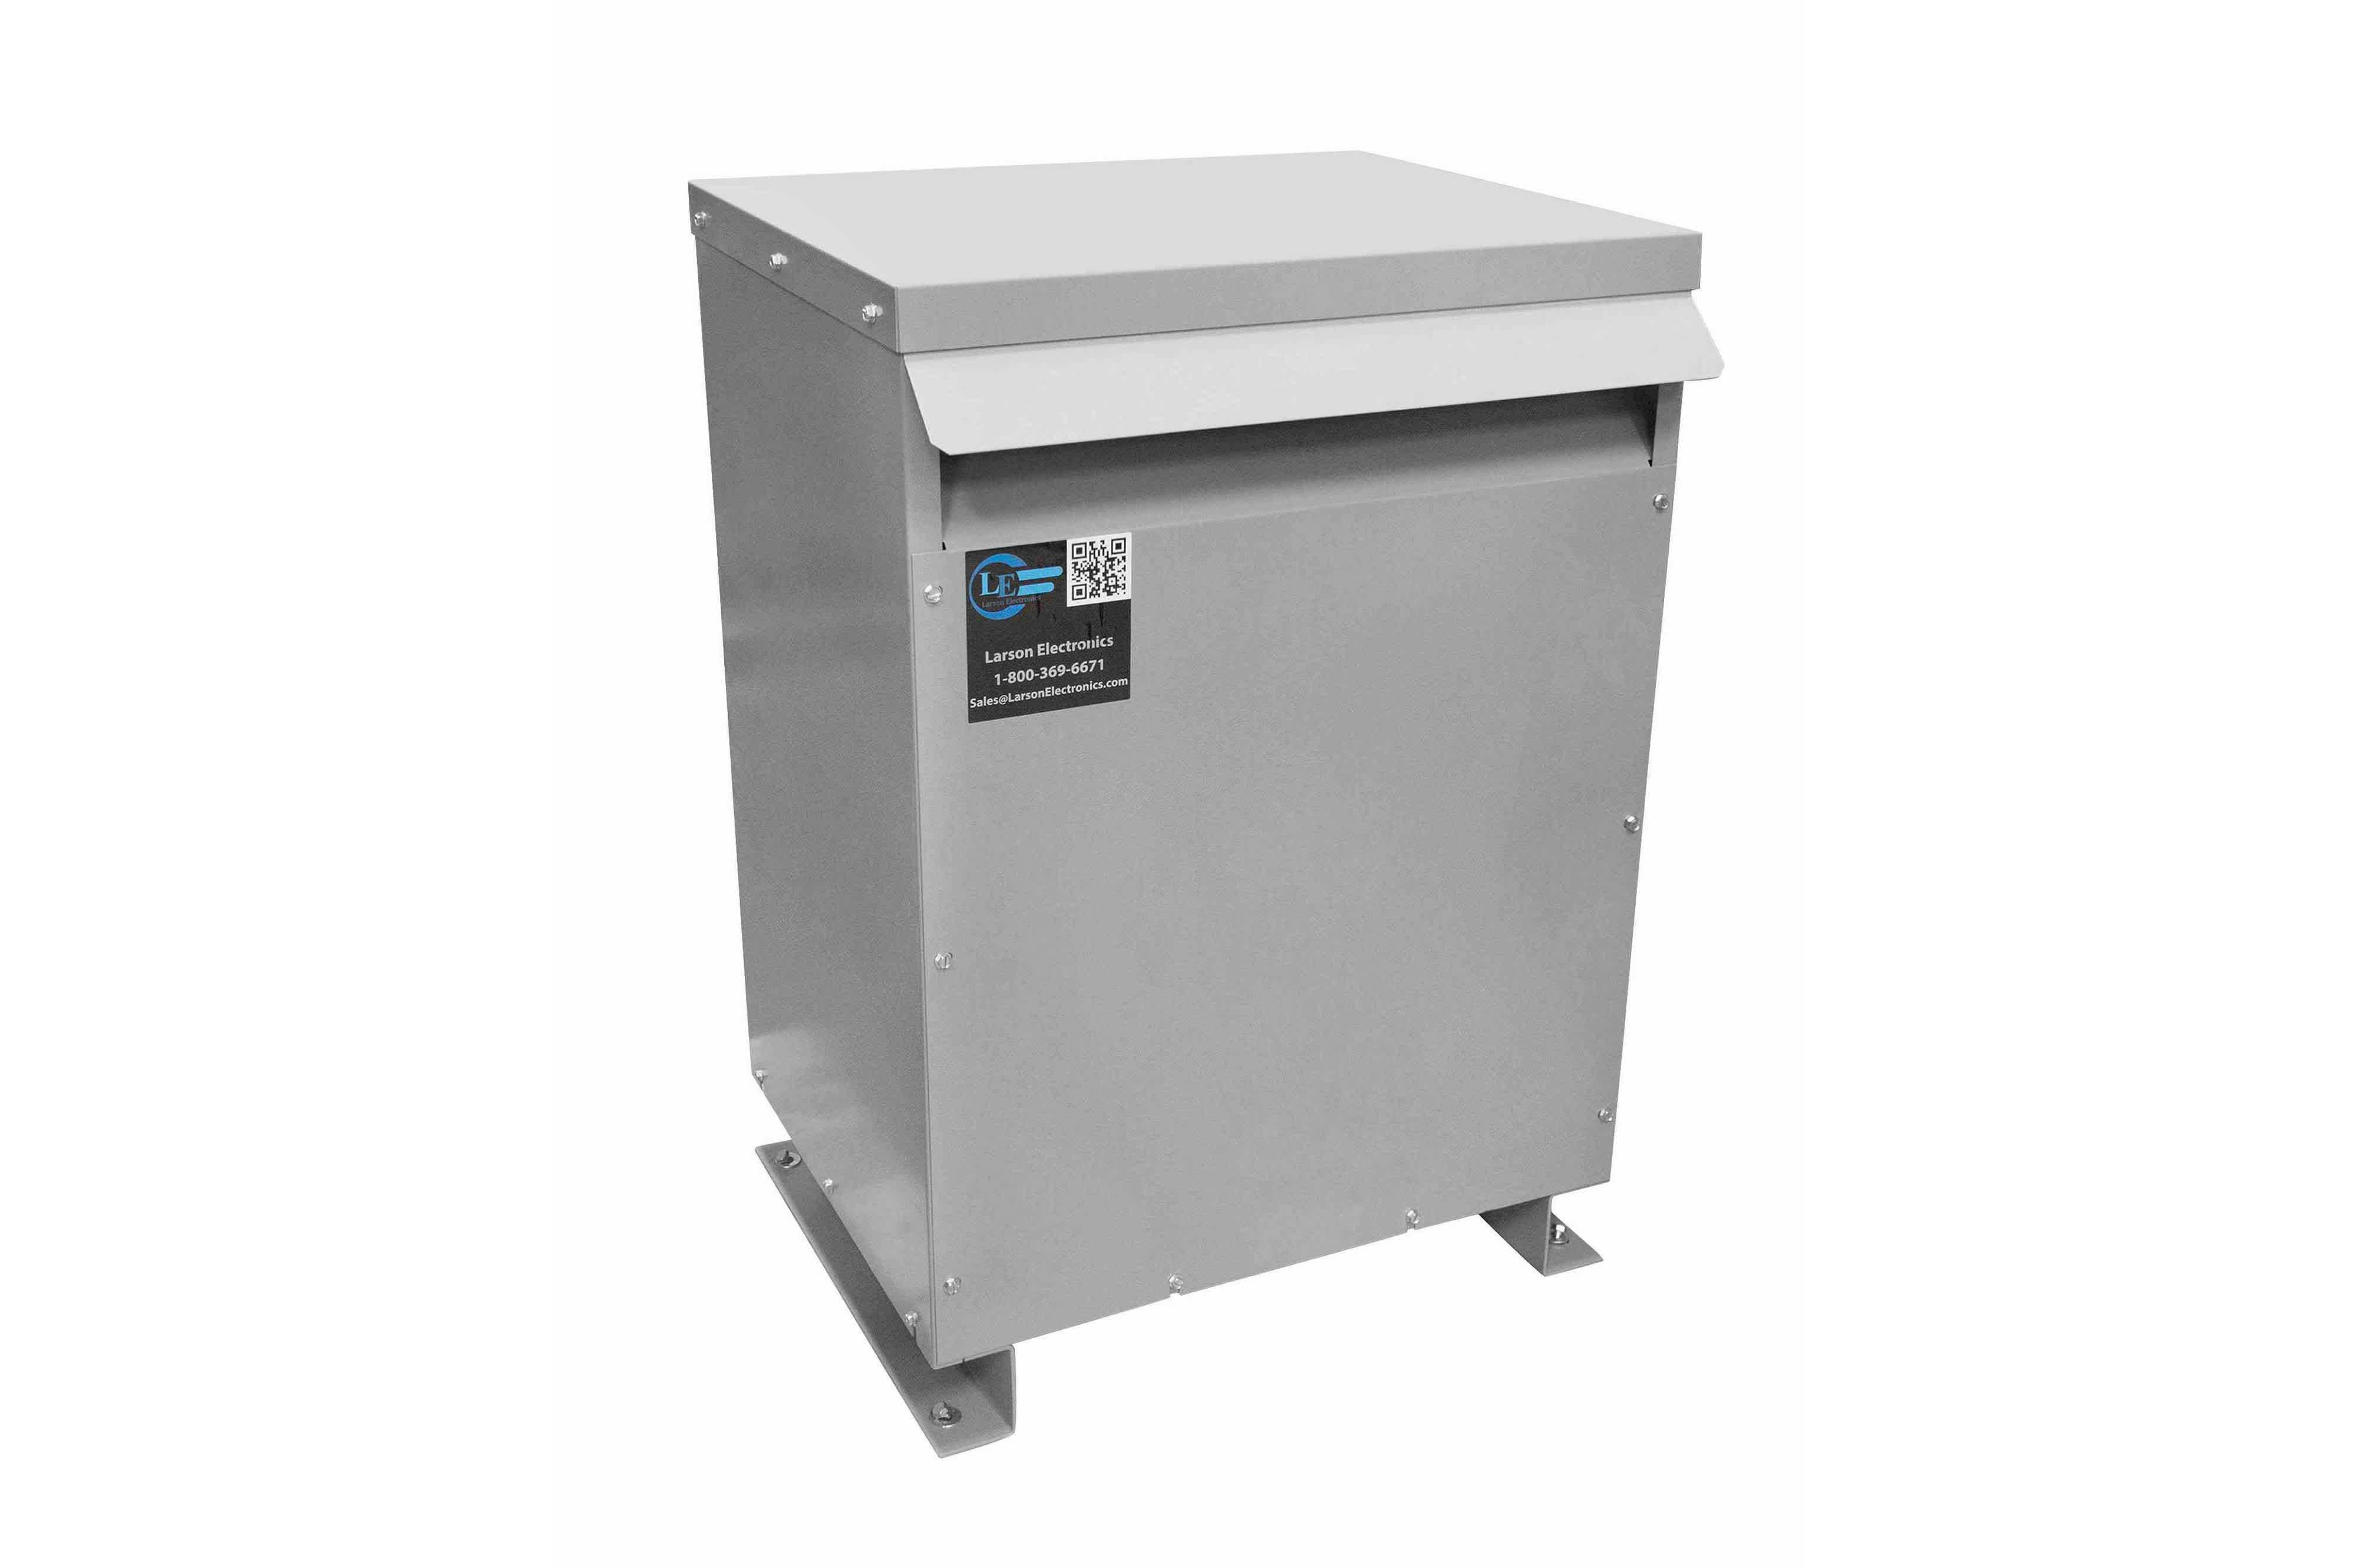 47.5 kVA 3PH Isolation Transformer, 460V Wye Primary, 575V Delta Secondary, N3R, Ventilated, 60 Hz